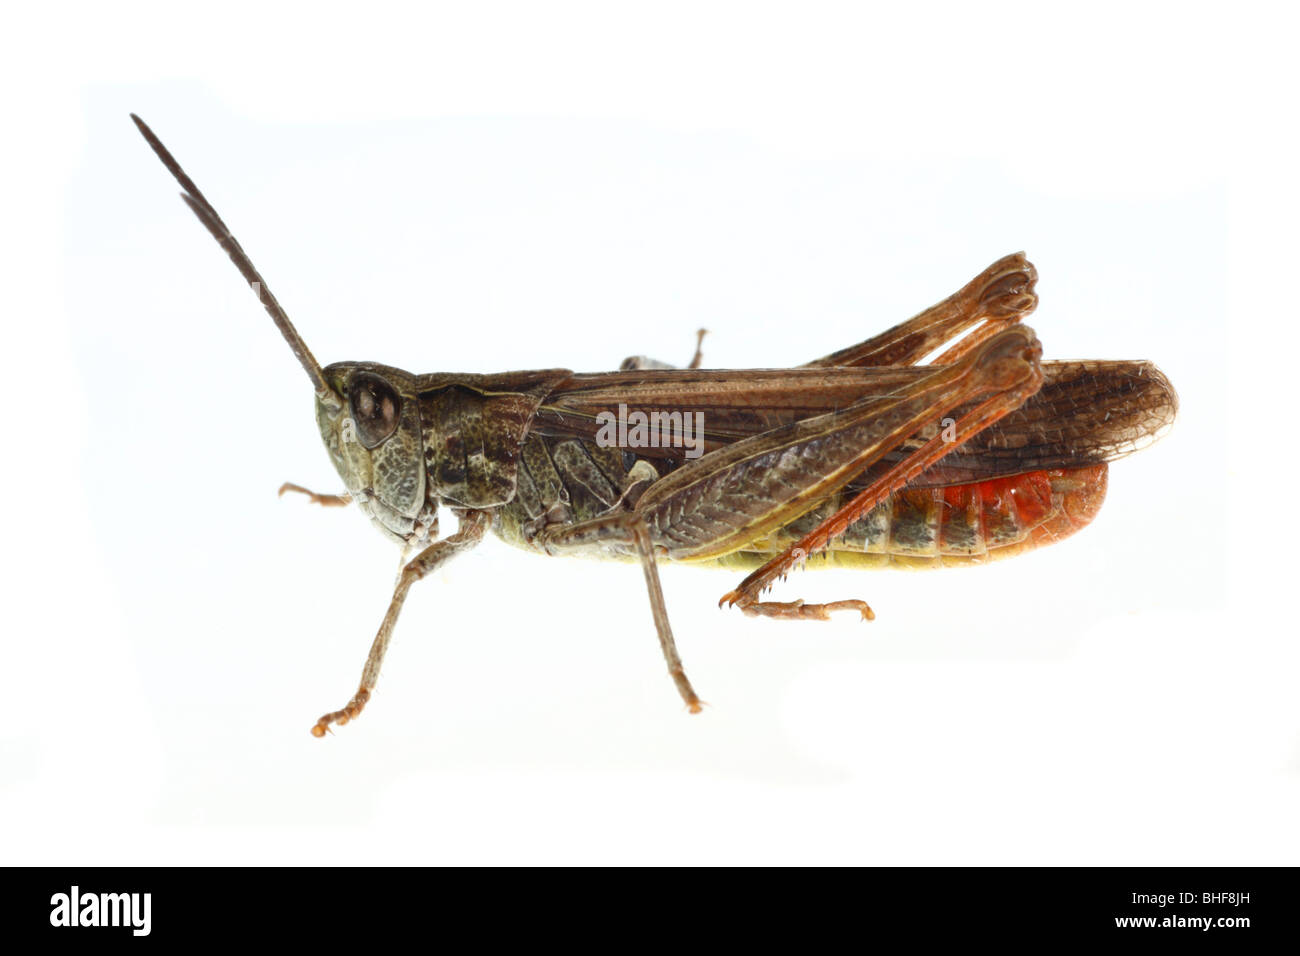 Male Field Grasshopper (Chorthippus brunneus). Live insect photographed against a white background on a portable - Stock Image